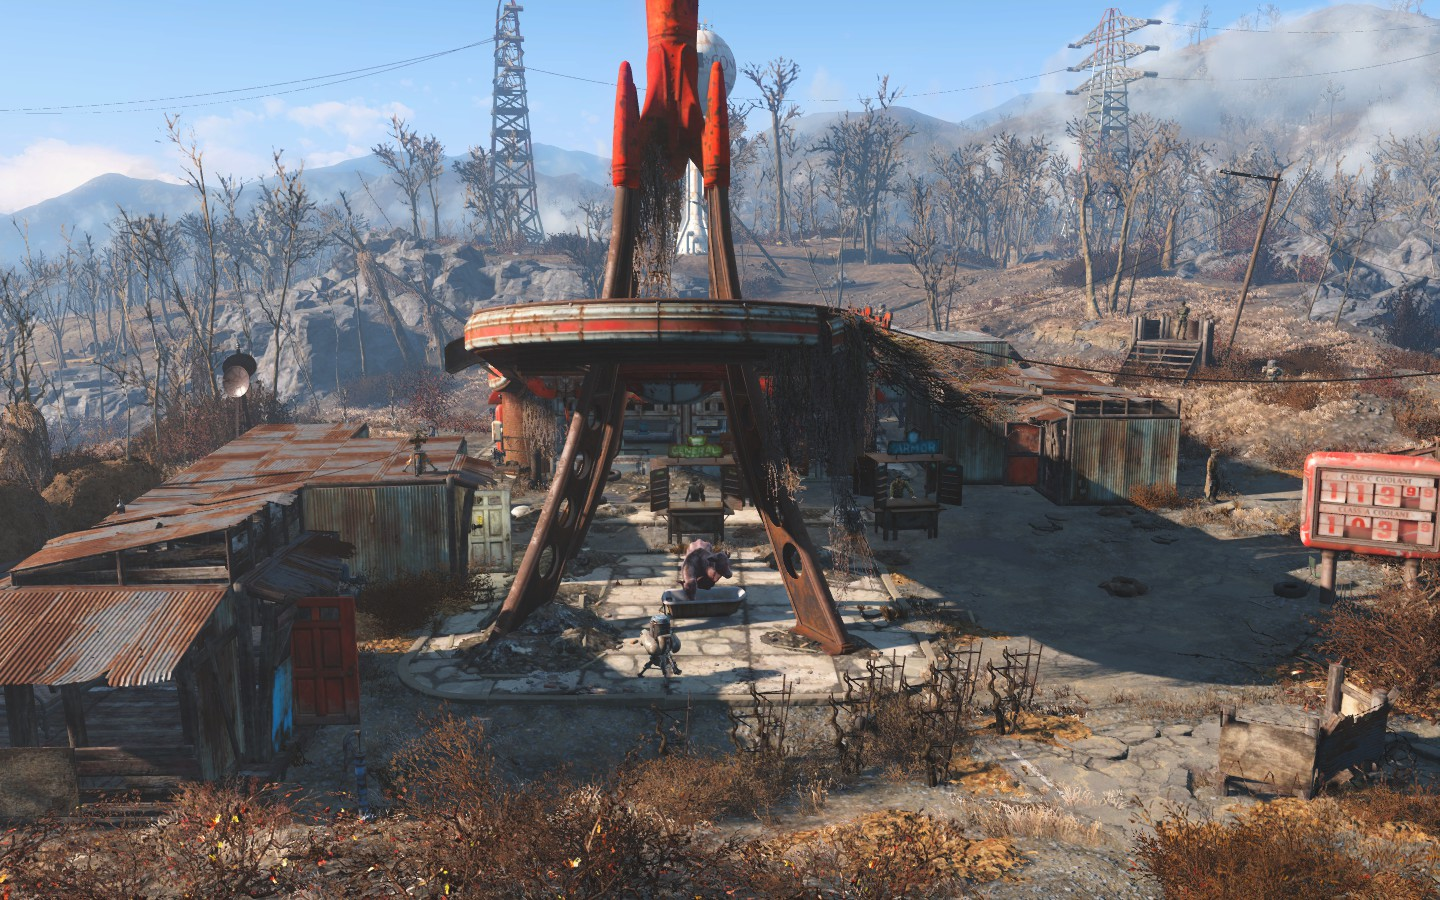 Check Out My Red Rocket Settlement